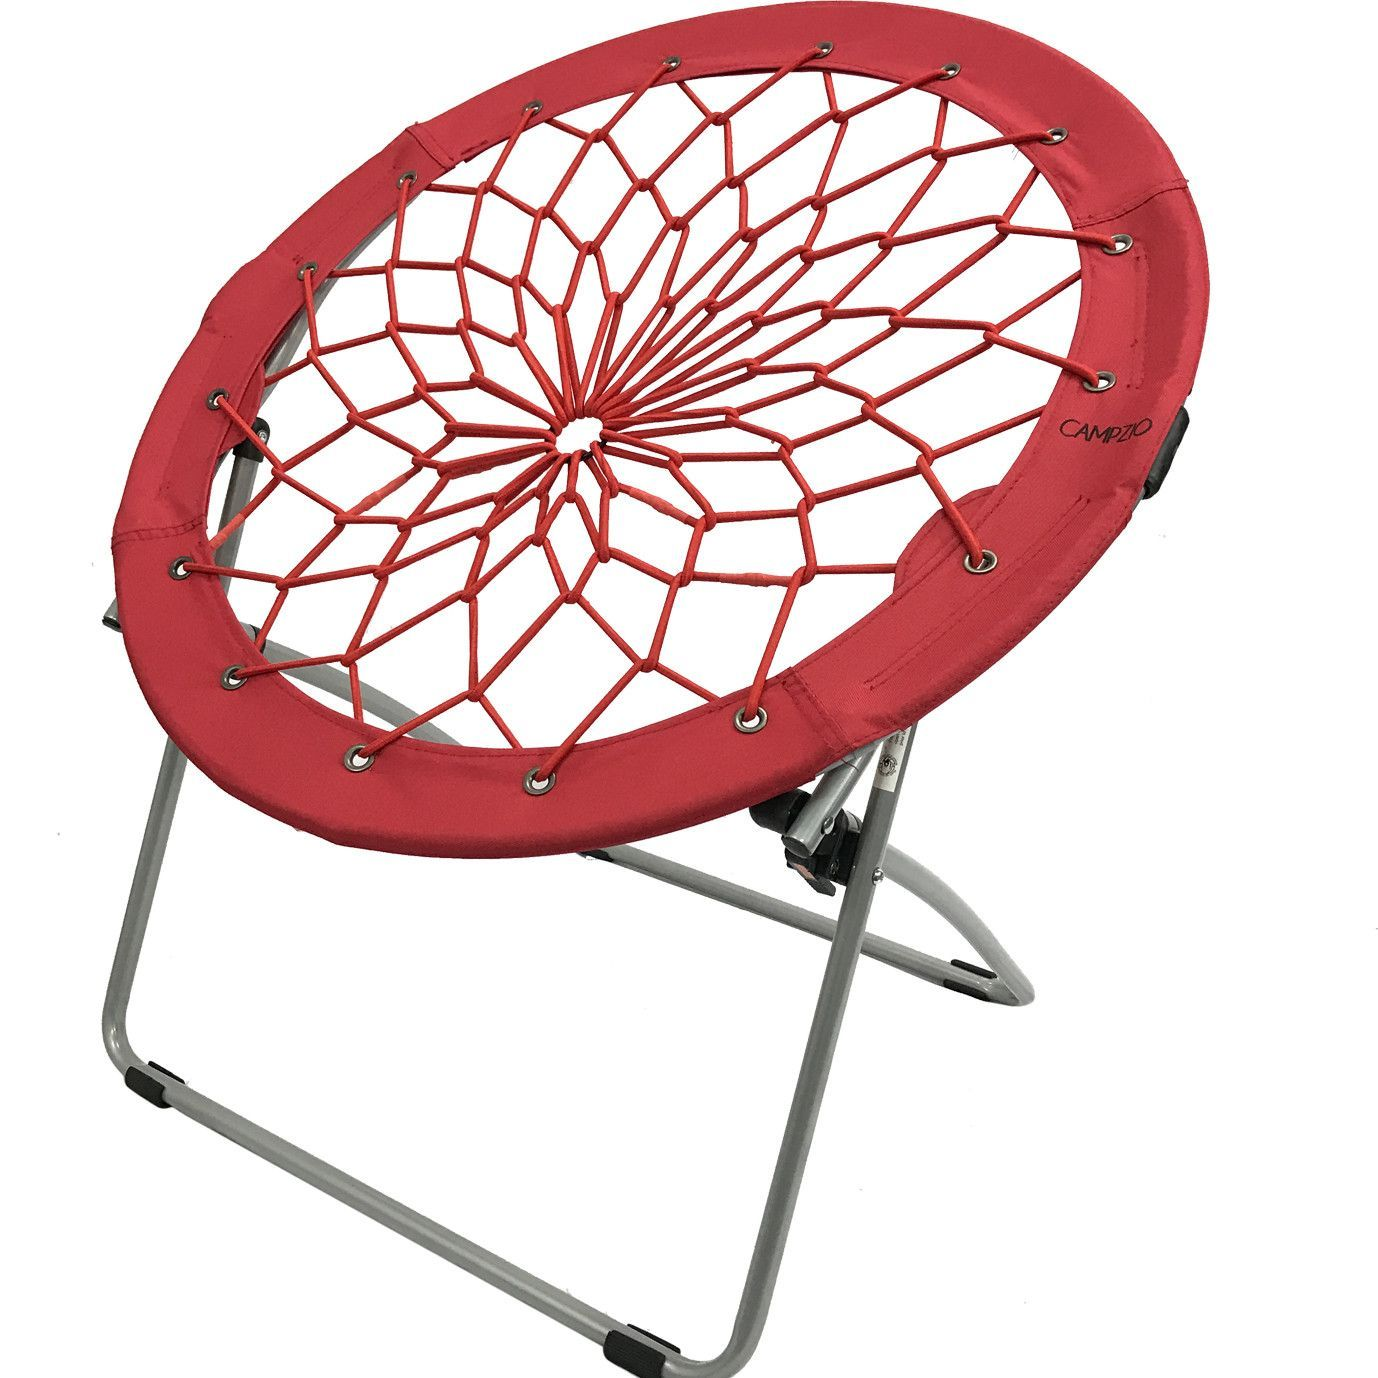 folding circle chairs real good chair copper campzio bungee round comfortable lightweight portable indoor outdoor camping sports event